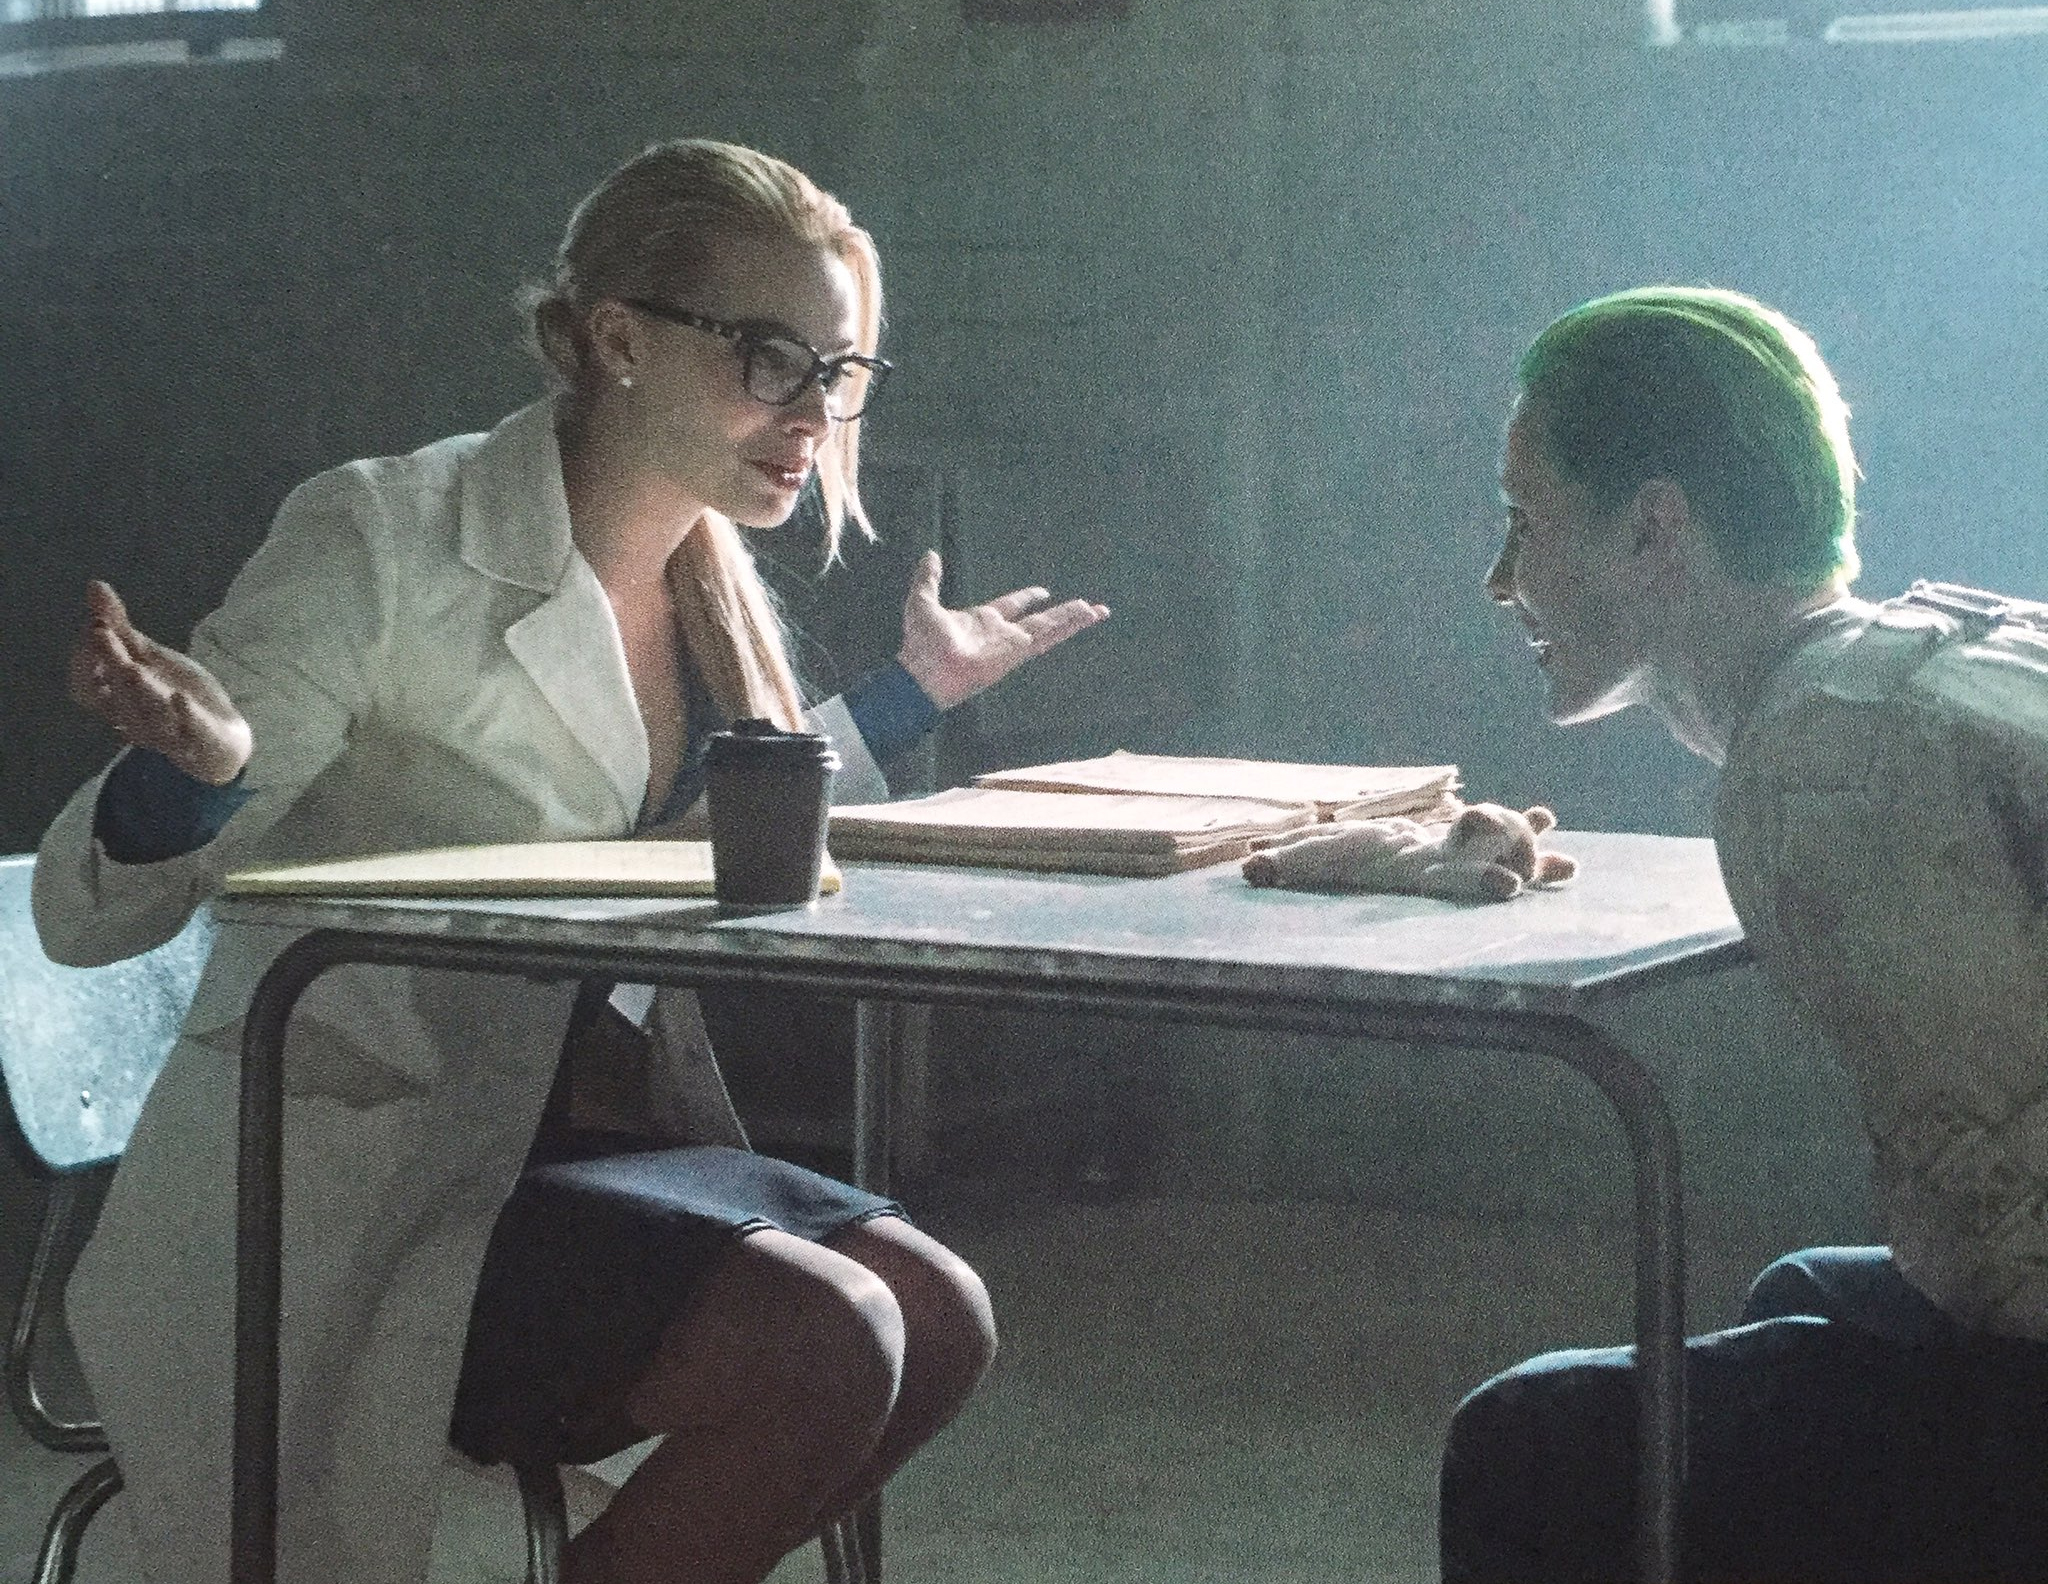 Dr. Harleen Quinzel and The Joker